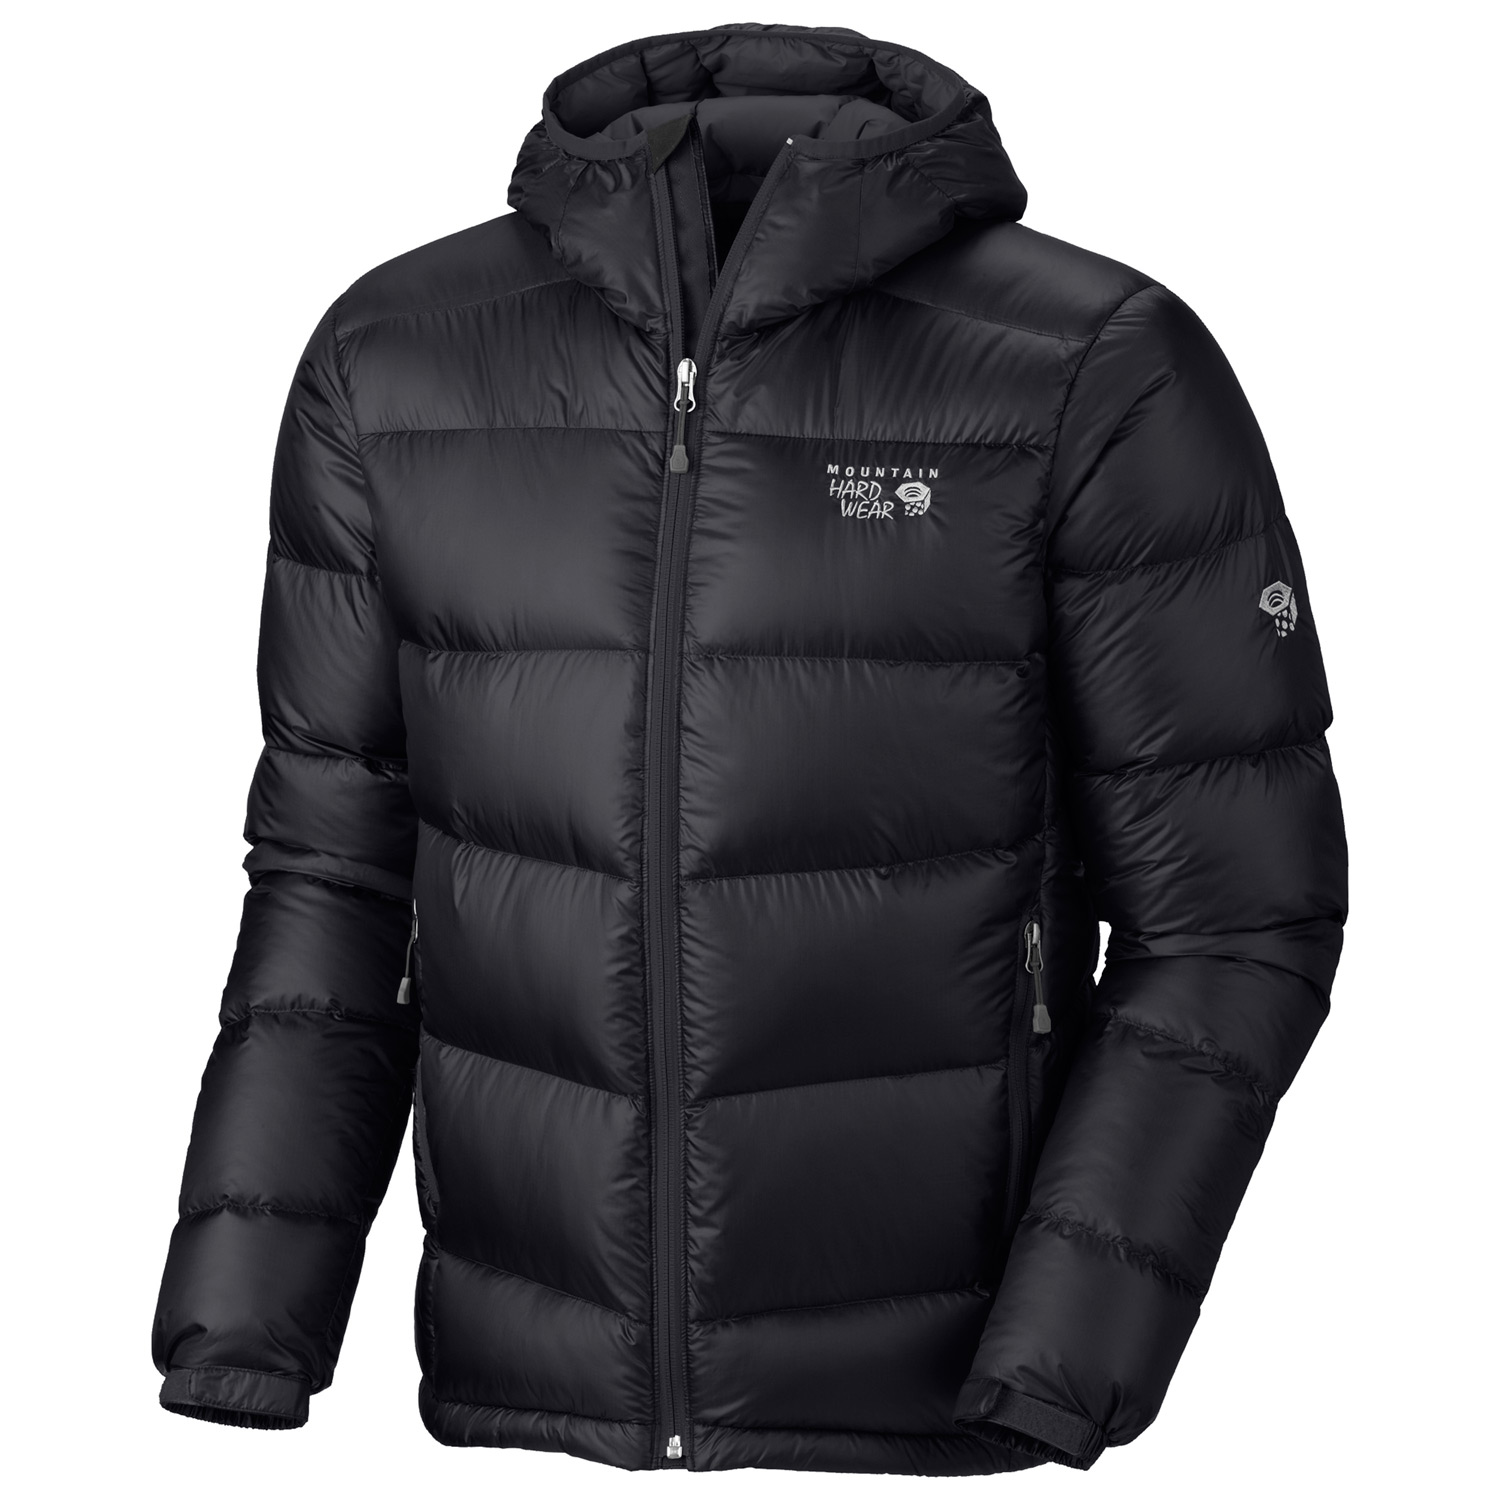 Looking for the right winter route? You'll want to make sure you're in the right jacket first. This lofty 650-fill goose down jacket has incredible ripstop nylon and DWR for abrasion and water resistance on even the toughest winter lines. Lightweight fabric and plenty of lofty 650-fill down. This jacket will keep you warm and moving quickly up the mountain.Key Features of the Mountain Hardwear Kelvinator Jacket: 20D Nylon Rip (100% nylon) 650-Fill Goose DownTwo front handwarmer pockets Dual hem drawcords seal in warmth Full elastic cuffs slide easily over layers to seal in warmth Low profile, insulated hood Micro-Chamois-lined chin guard prevents zipper chafe - $265.00